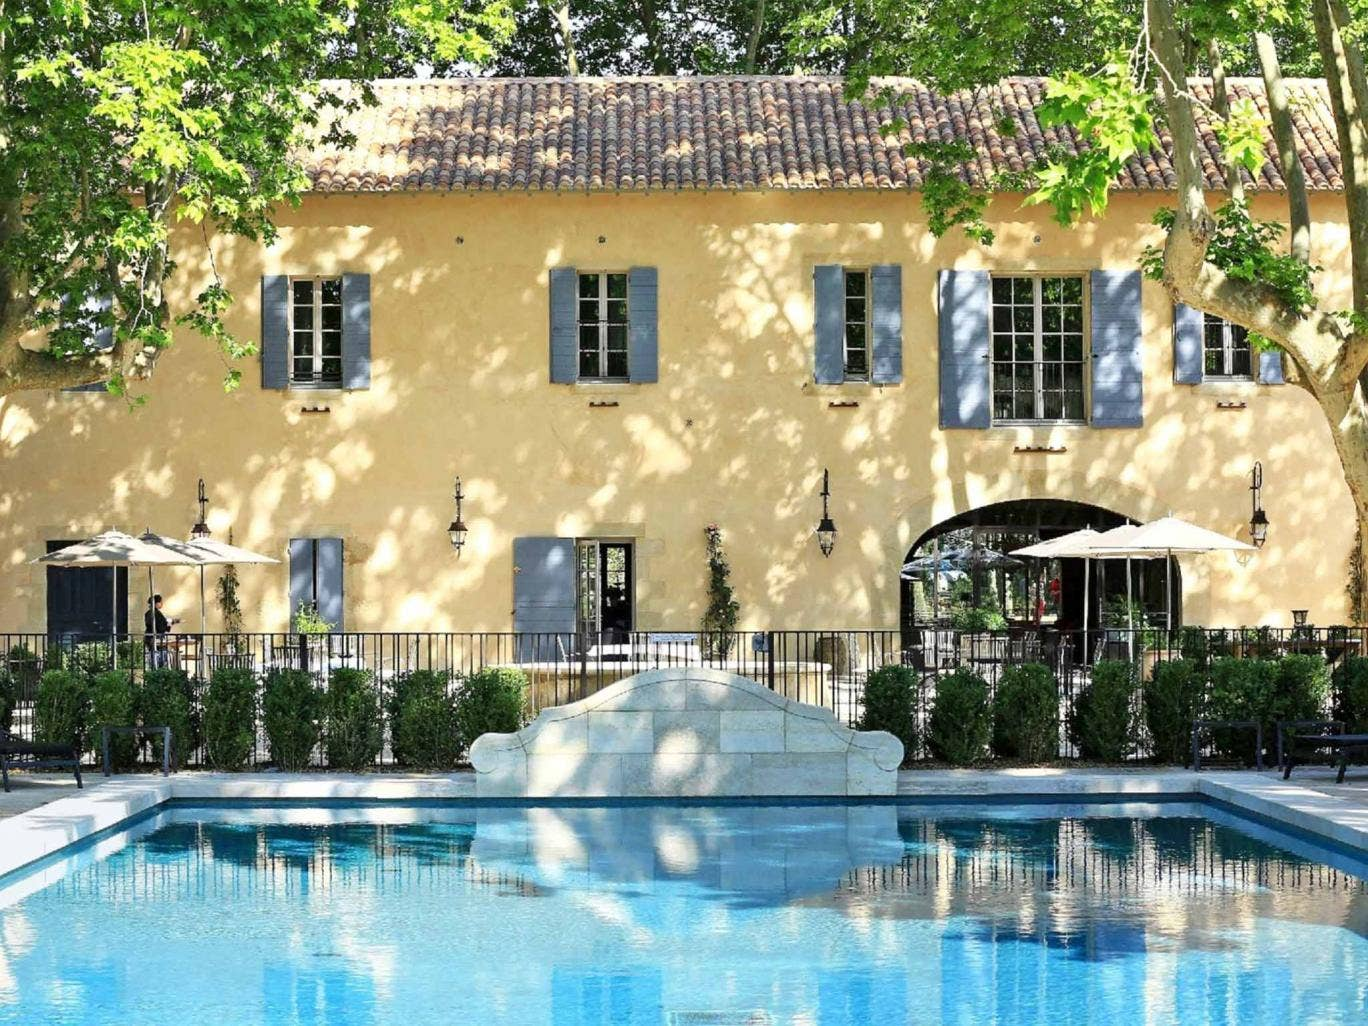 Cool water: the hotel's stone pool